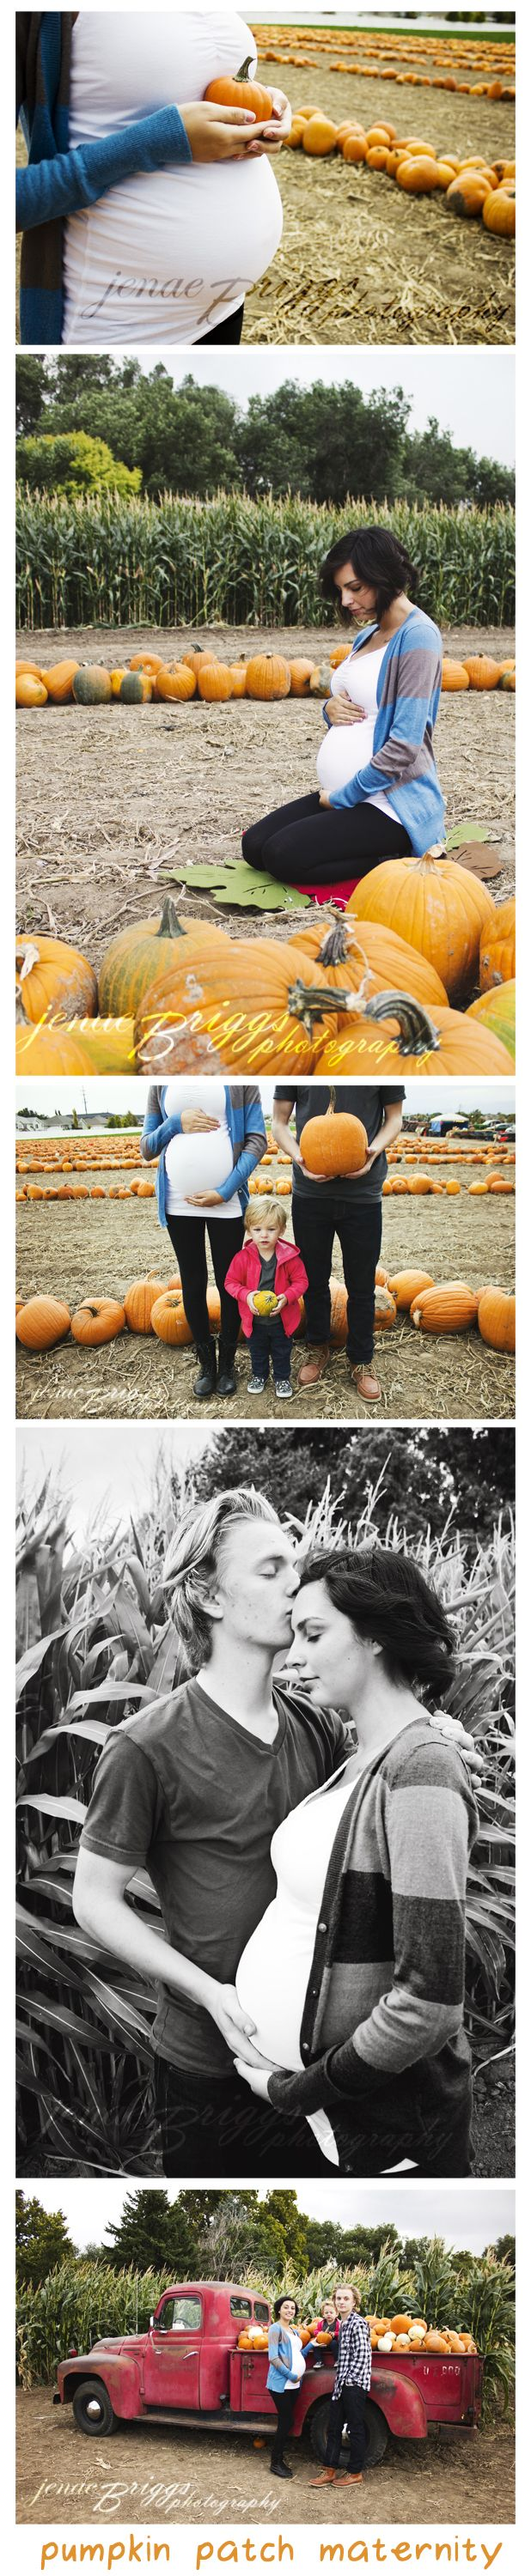 pinterest maternity pin